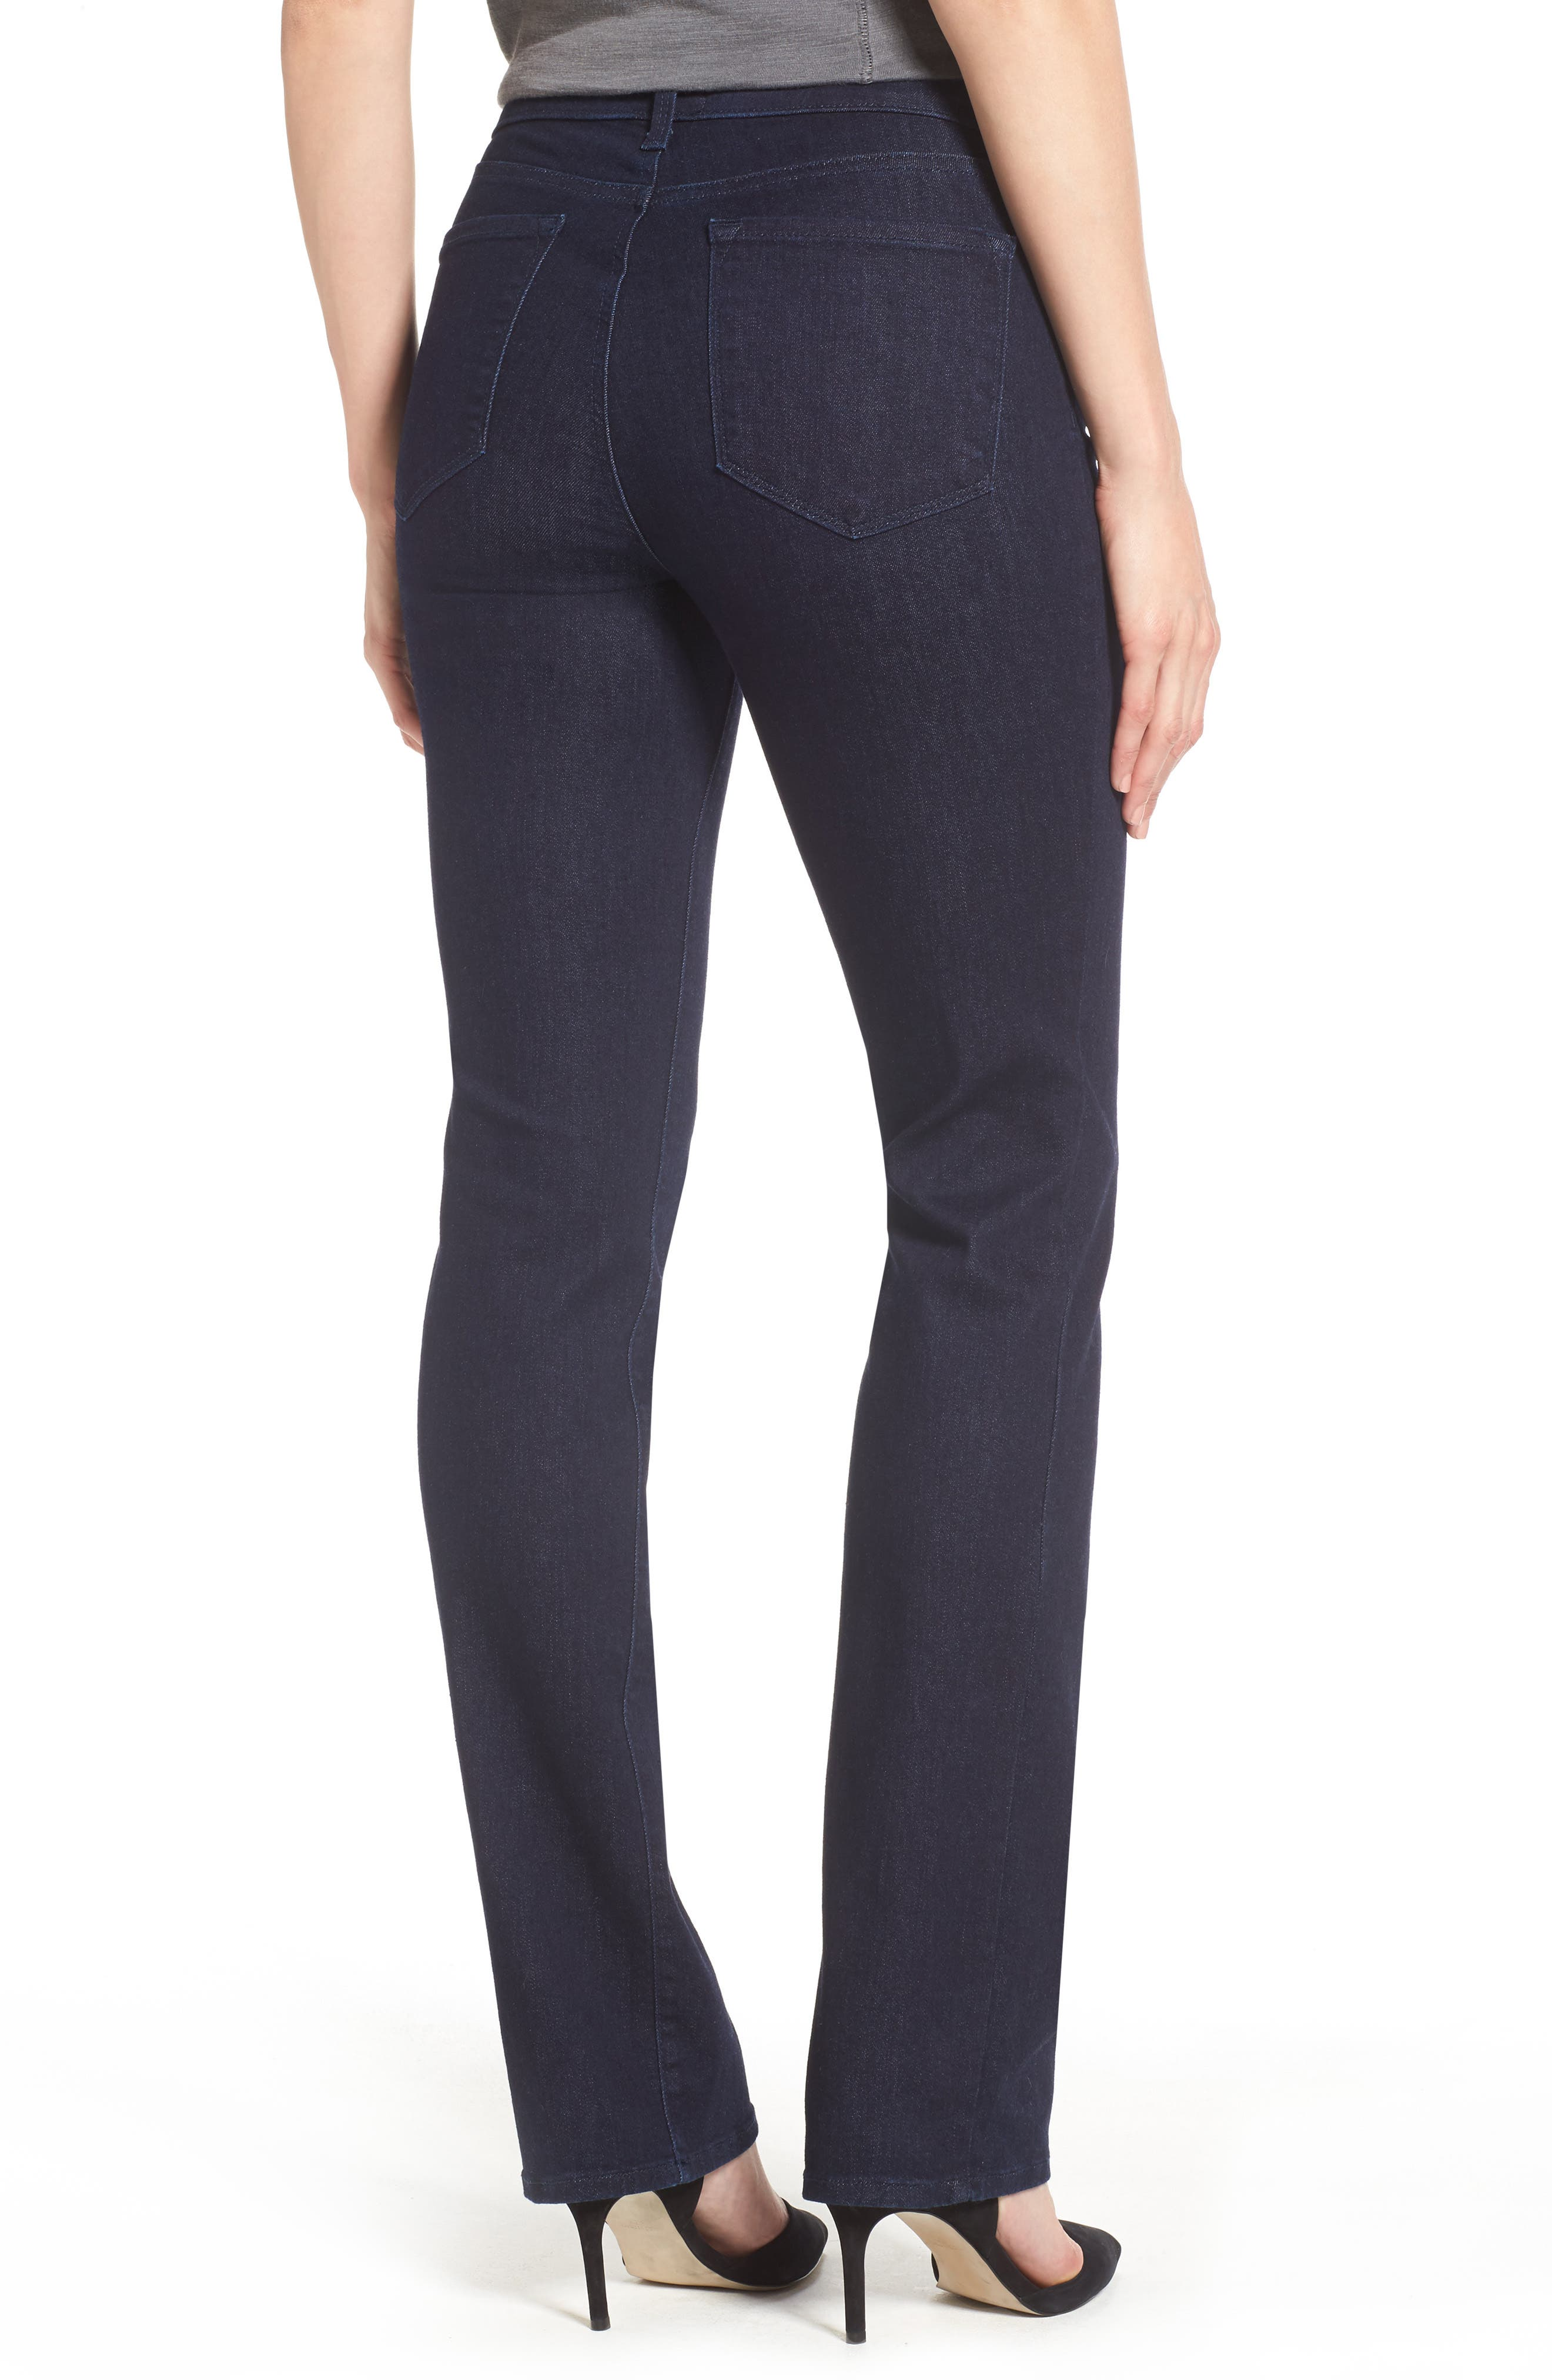 Marilyn Stretch Straight Leg Jeans,                             Alternate thumbnail 2, color,                             Rinse